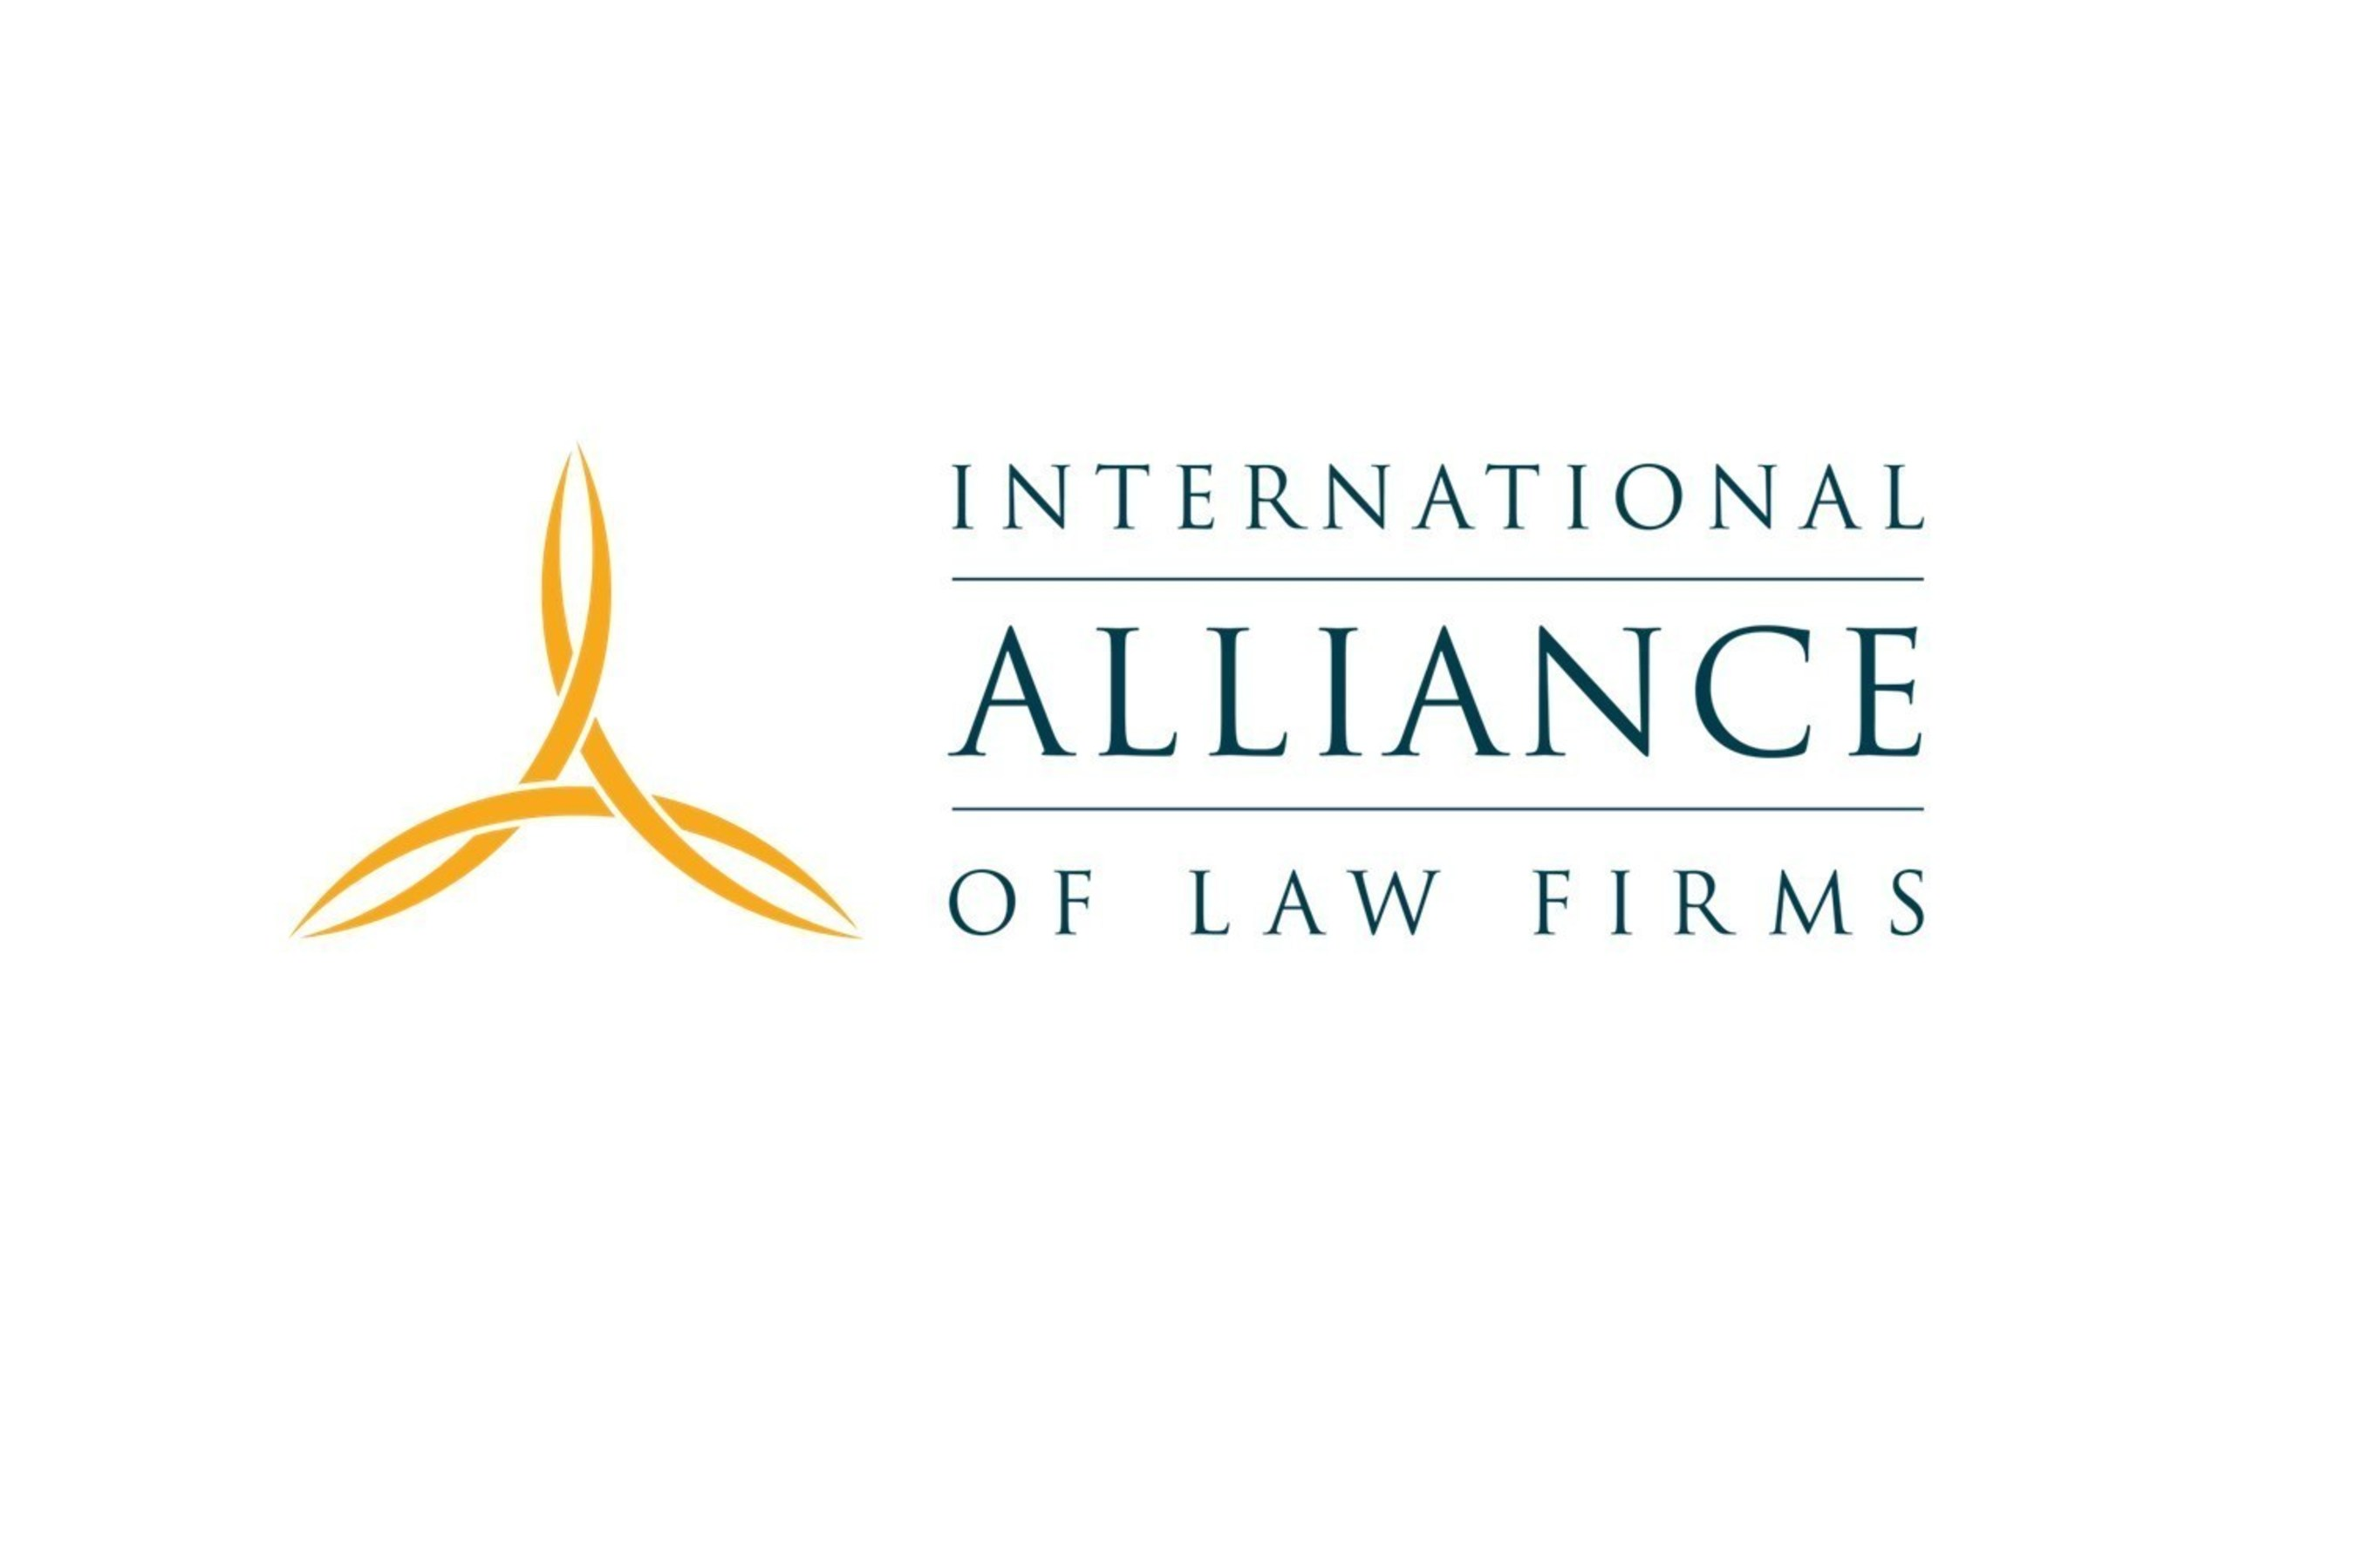 The International Alliance of Law Firms Admits Oldest